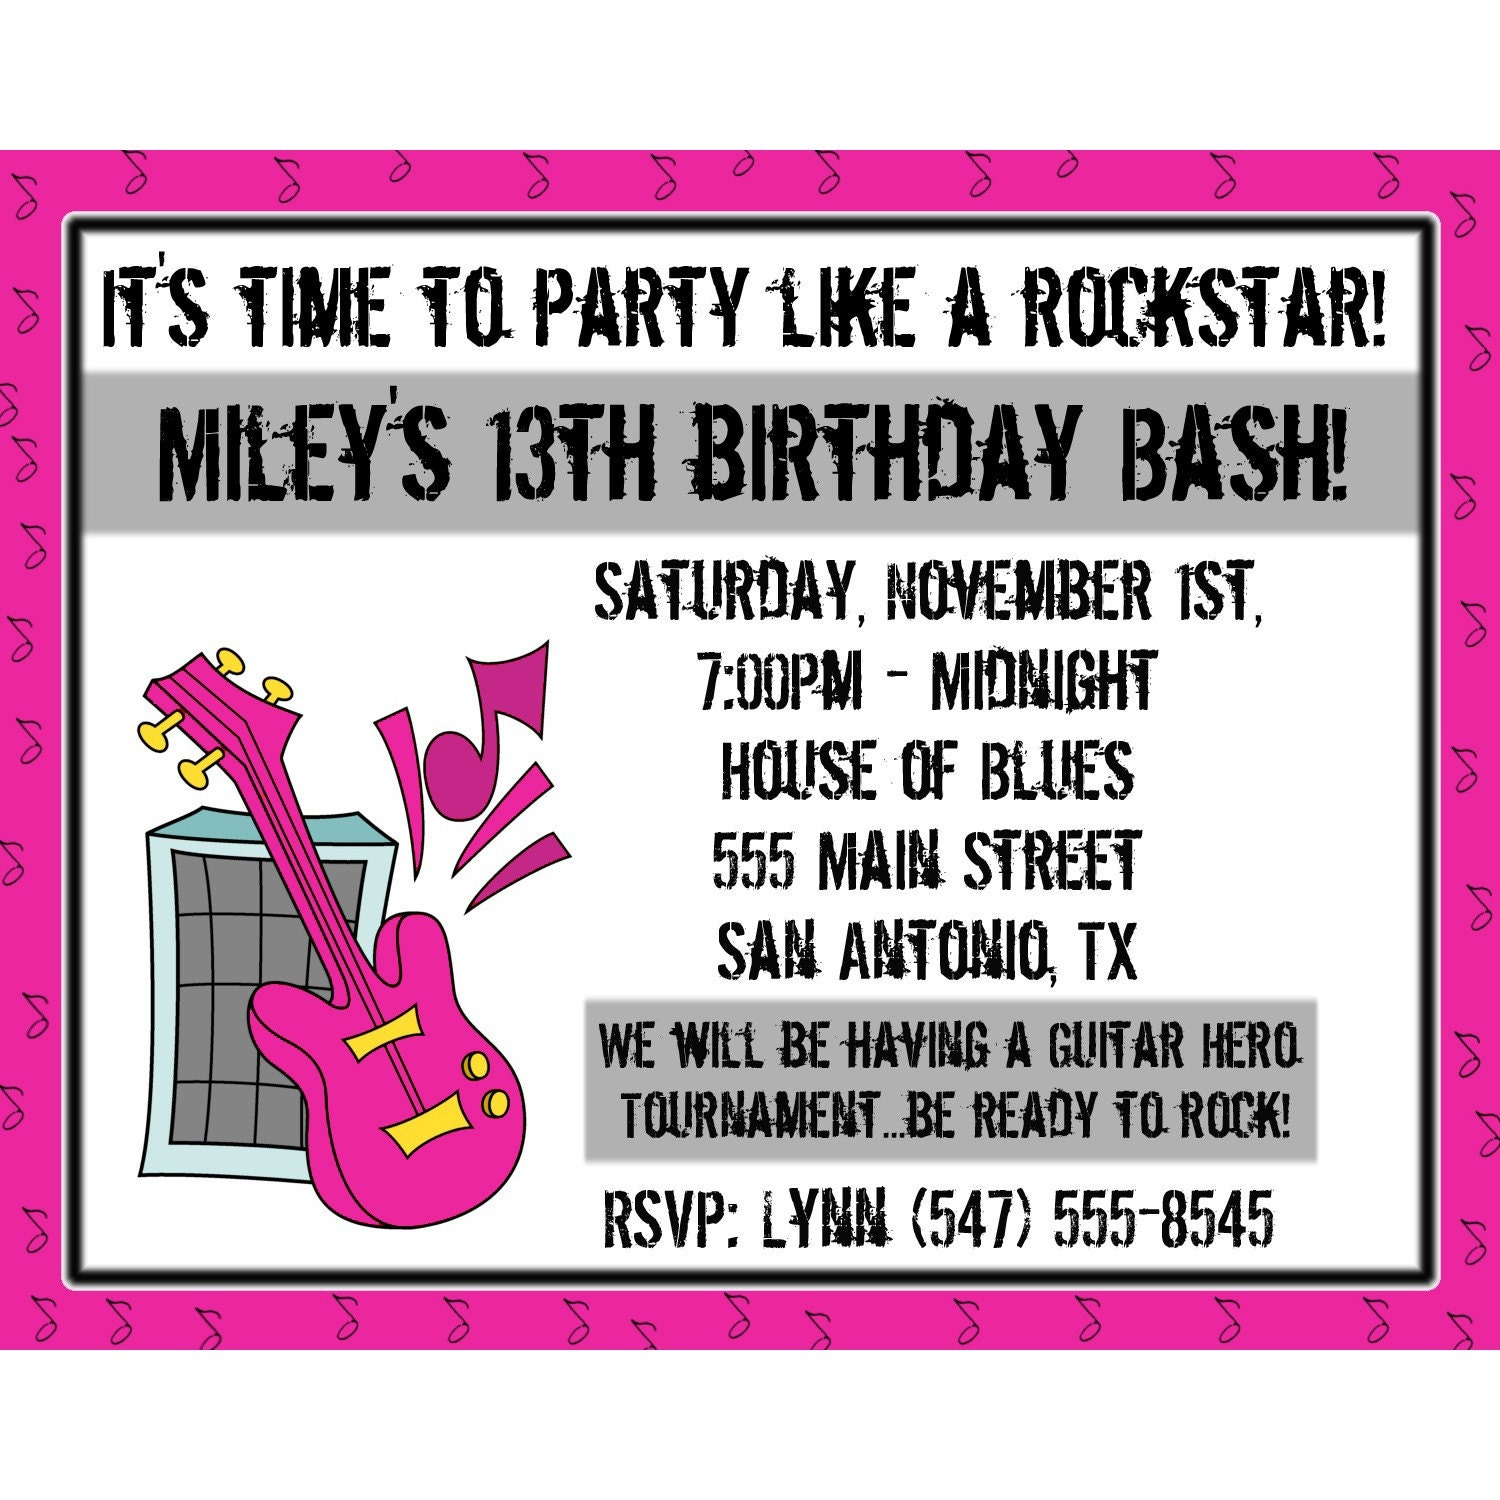 20 Personalized Birthday Invitations PARTY LIKE A ROCKSTAR - Pink ...